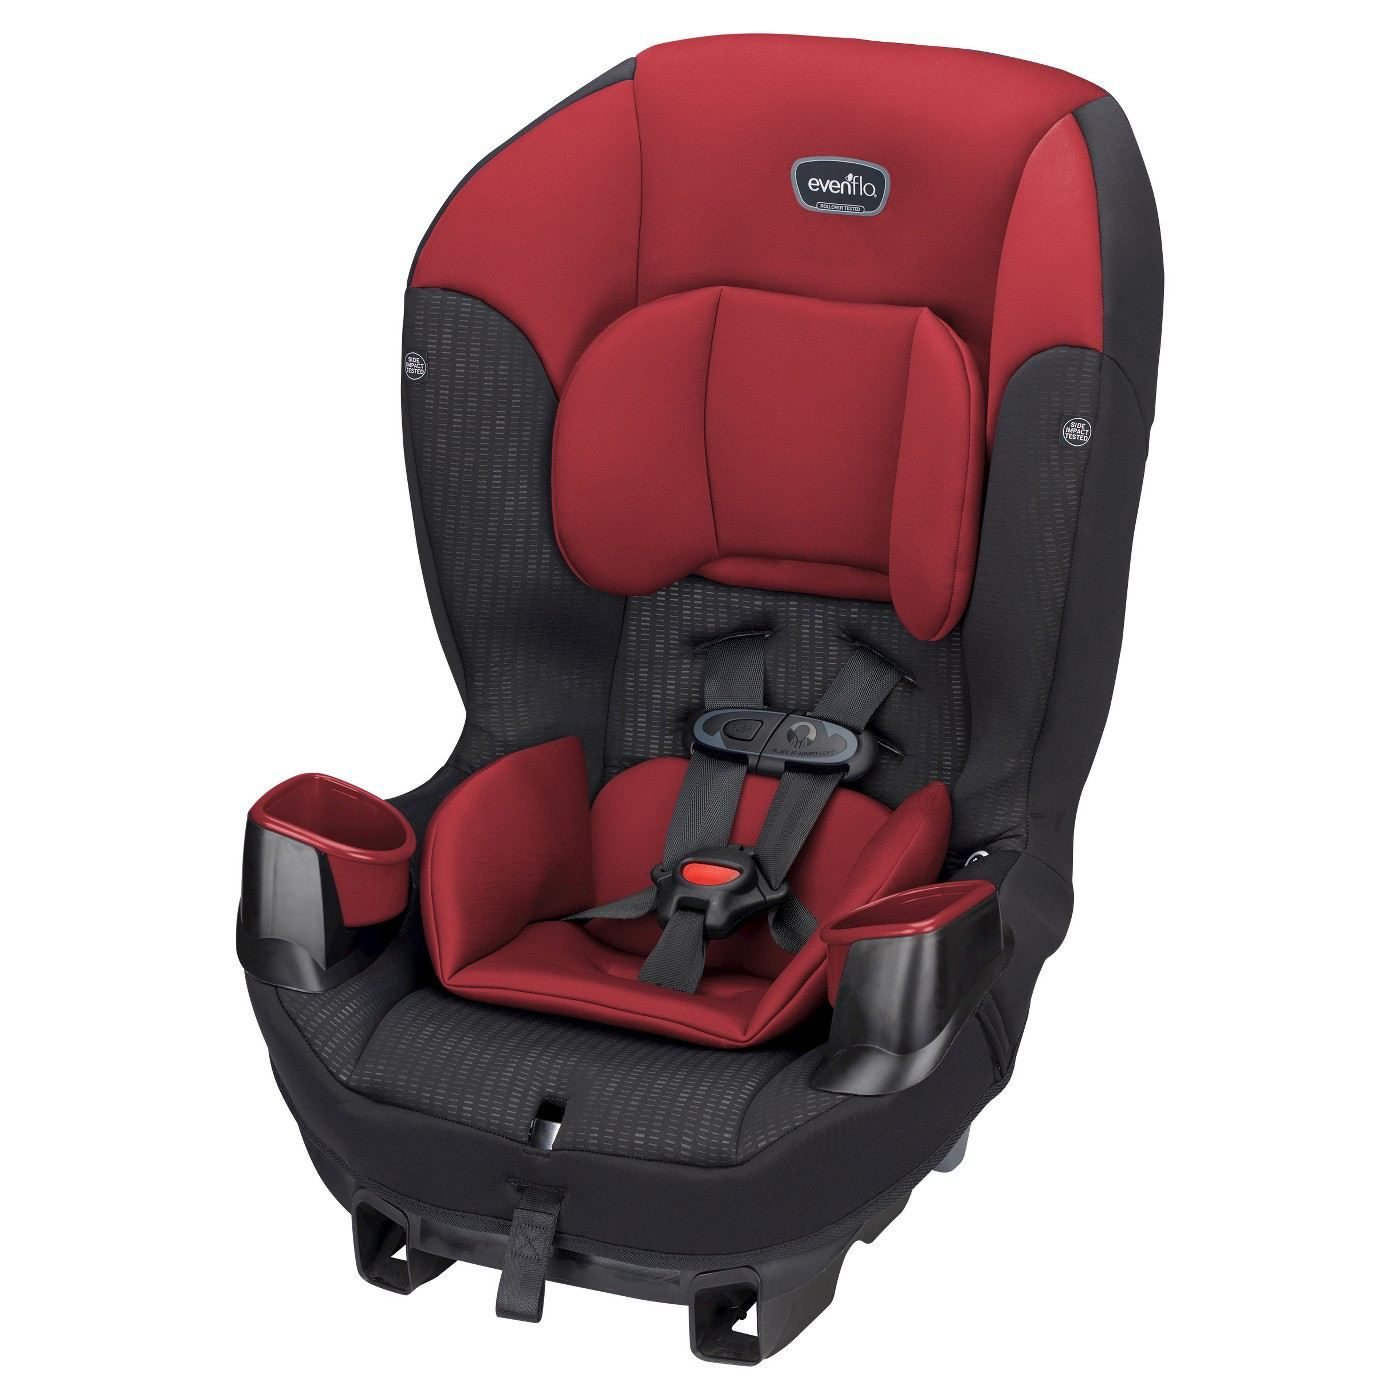 Lit 1 Place Convertible 2 Places Charmant the 11 Best Convertible Car Seats to Buy In 2019